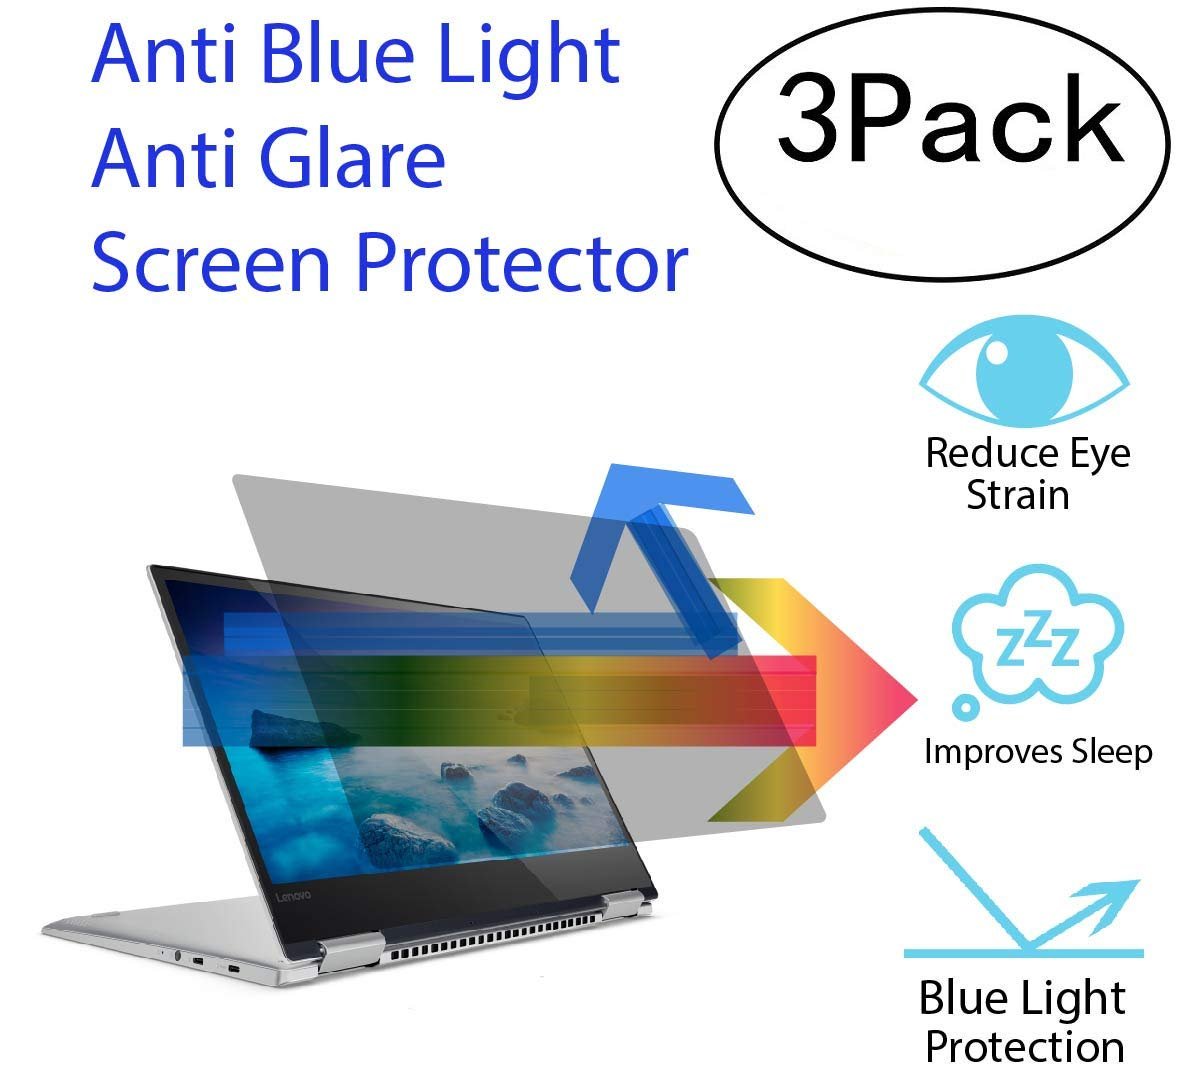 Premium Anti Blue Light and Anti Glare Screen Protector for 15.6 Inches Laptop with Aspect Ratio 16:09 by WS SCREEN PROTECTOR